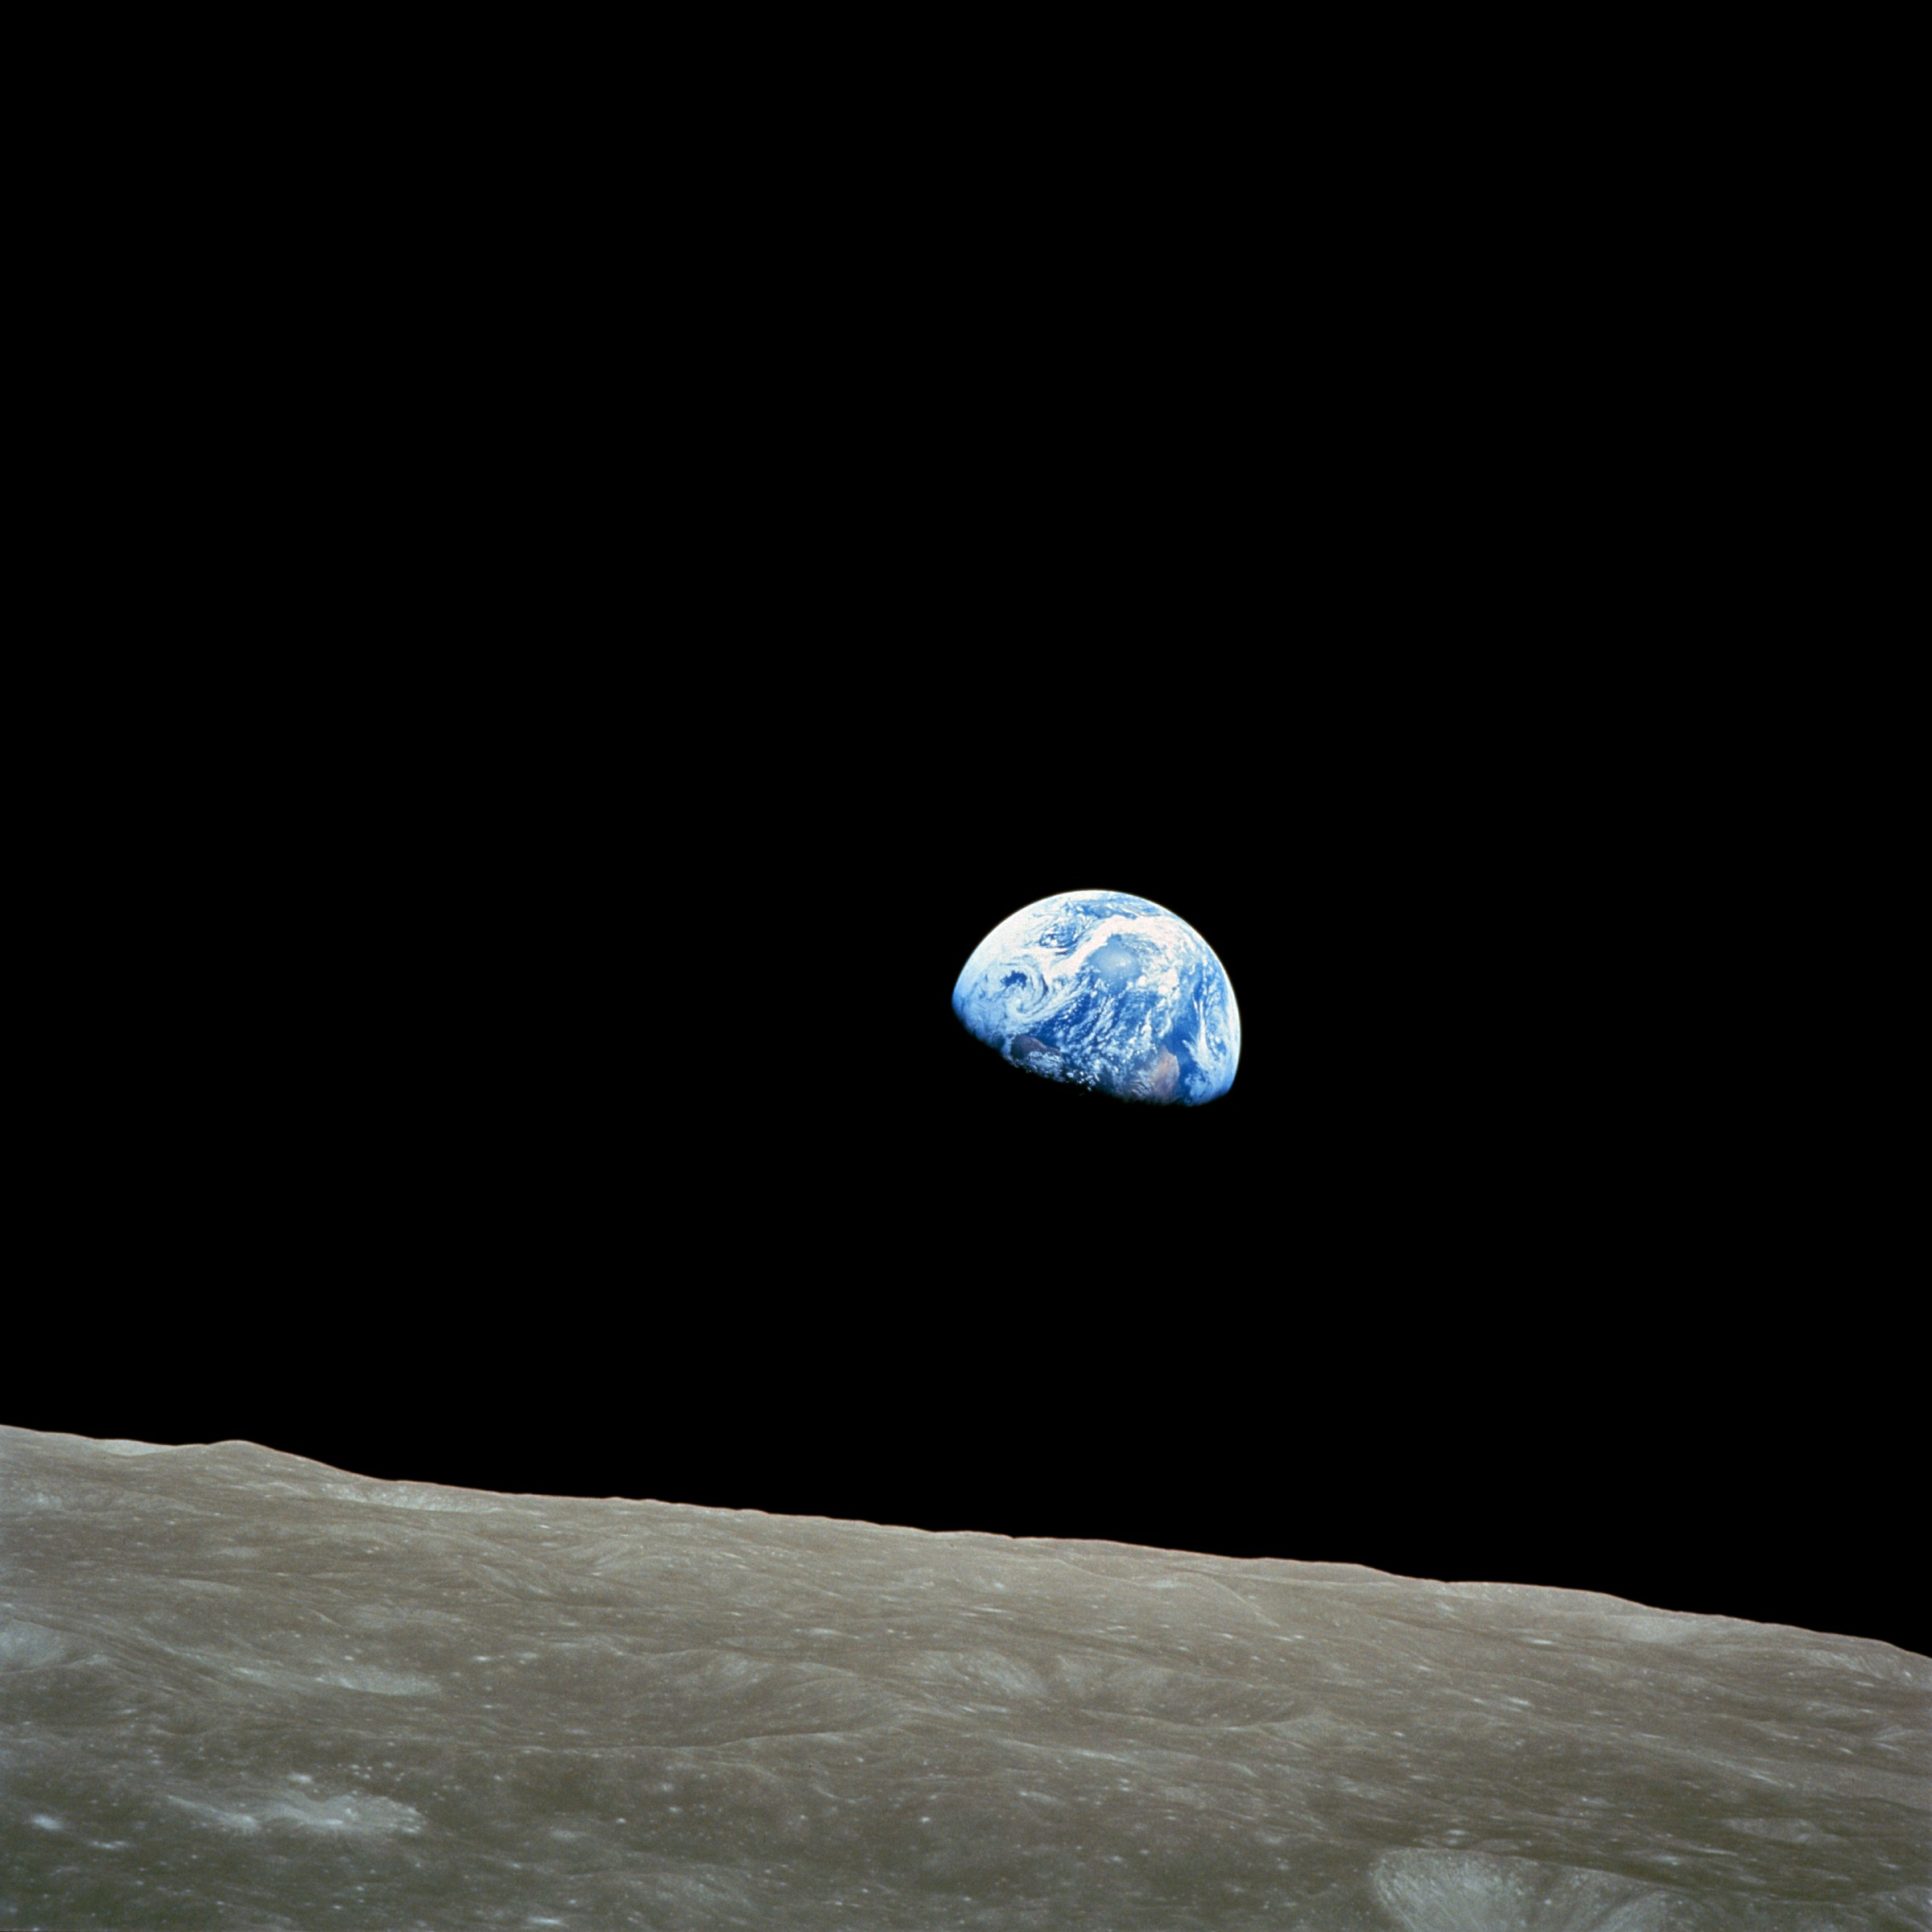 Earthrise  (rotated), taken during the Apollo 8 mission, 1968, courtesy of NASA. Public domain.